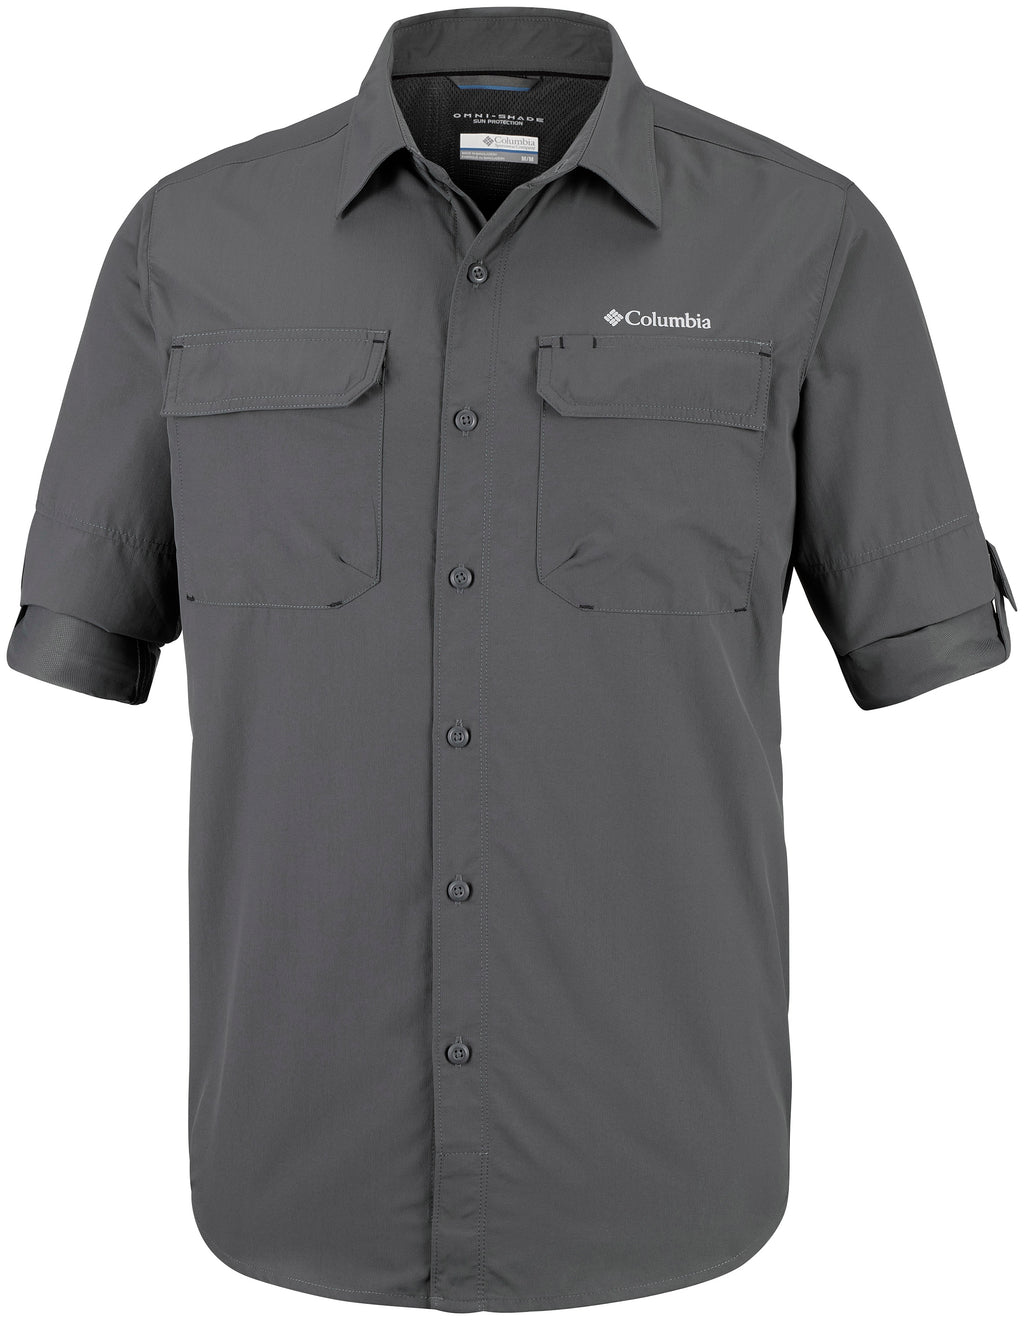 Columbia Men's Silver Ridge II LS promotional Shirt